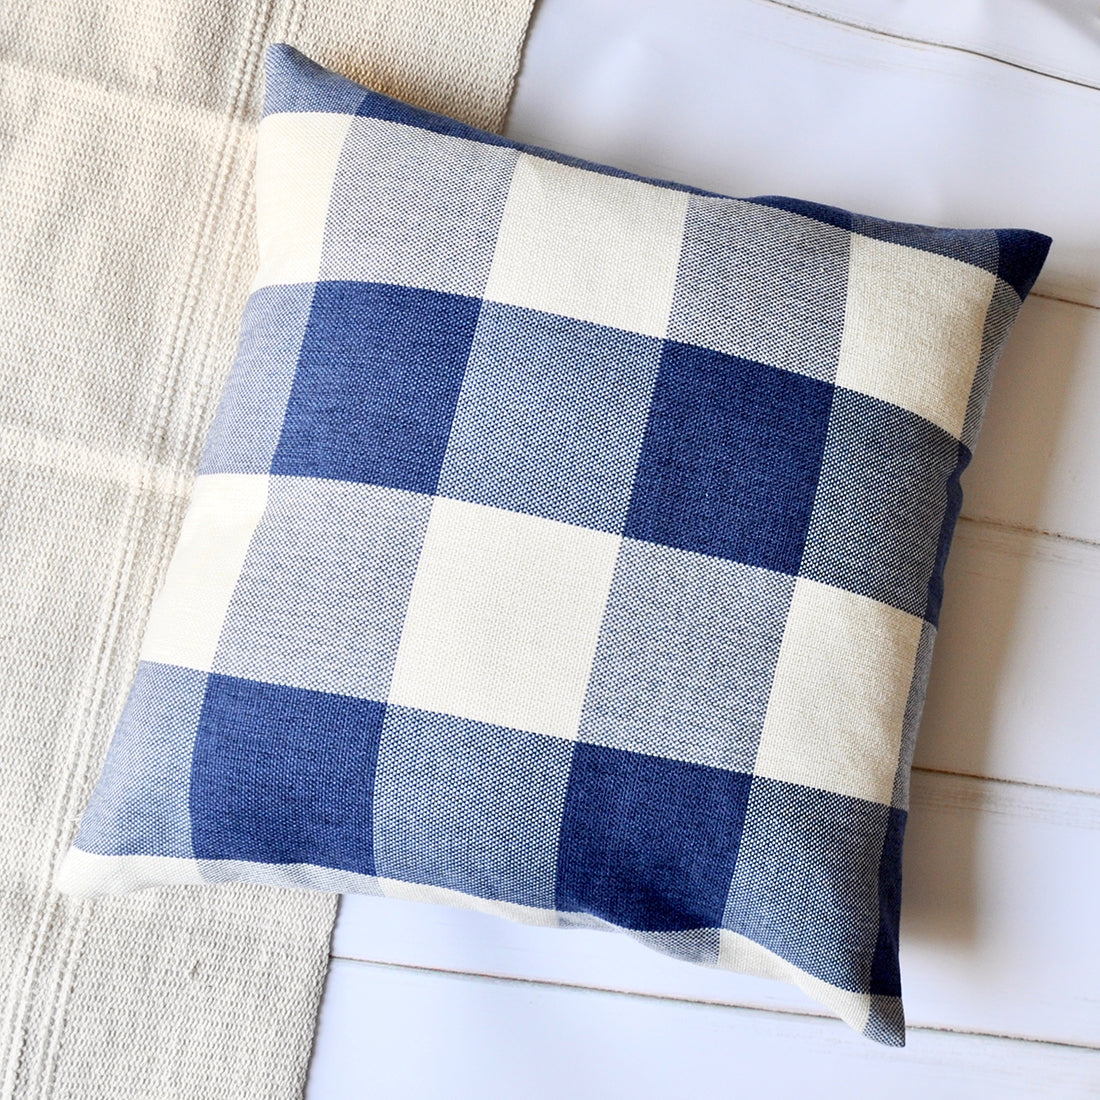 Super Pandicorn 2 Pack Farmhouse Decorative Throw Pillow Covers Blue And White Plaid Textured Throw Pillows Cases Red And White Buffalo Check Pillowcases Ibusinesslaw Wood Chair Design Ideas Ibusinesslaworg